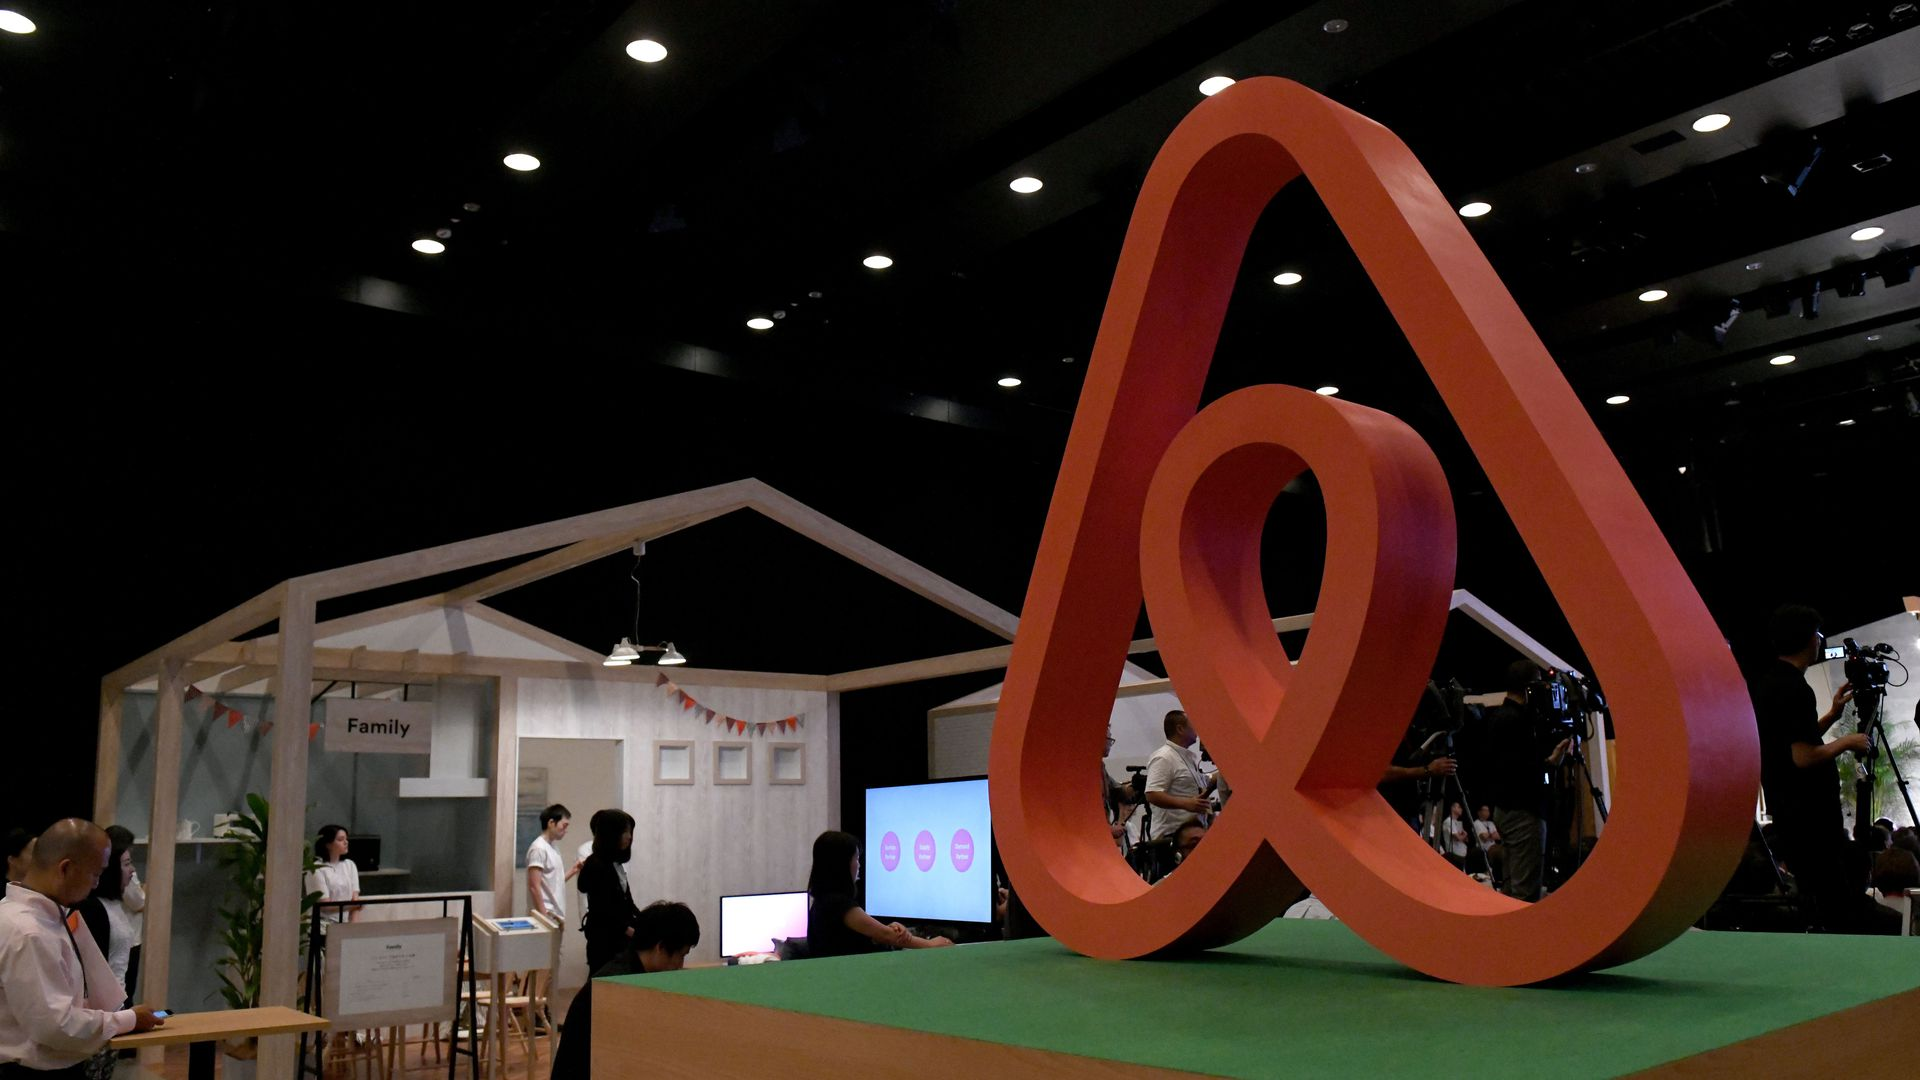 Photo of large Airbnb logo sculpture inside its Japan office.